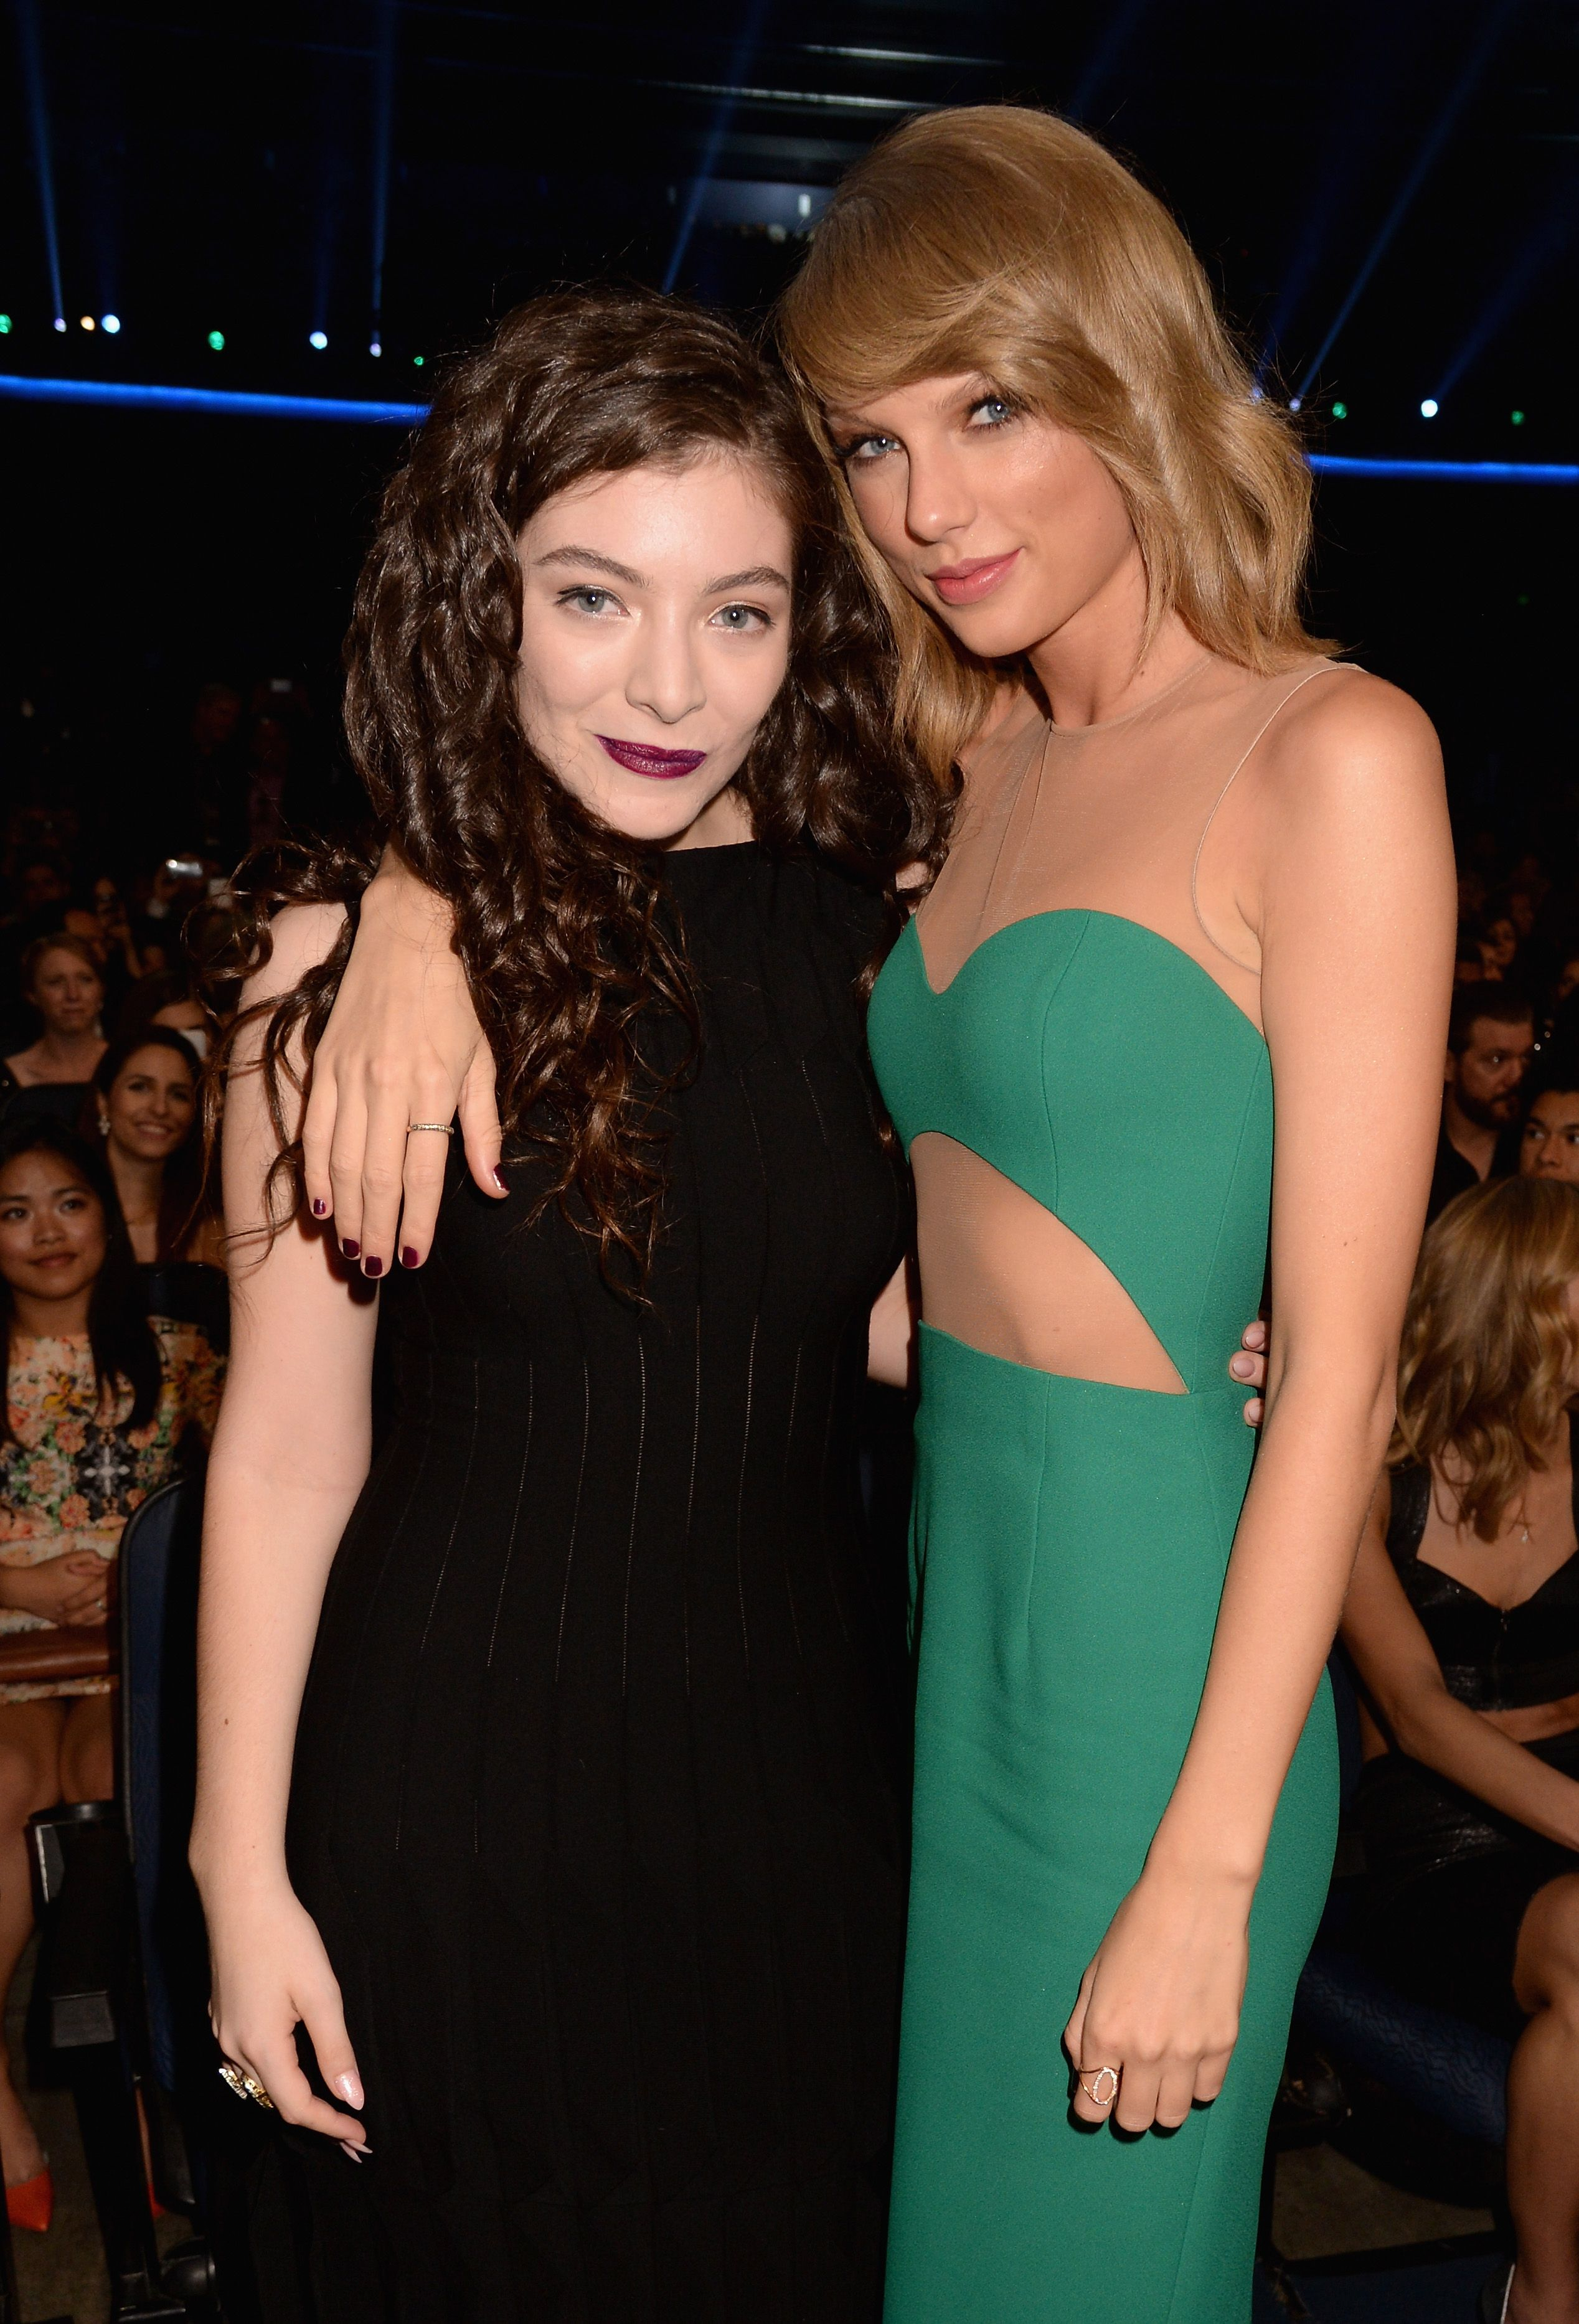 Lorde And Taylor Swifts Friendship 2014 Timeline